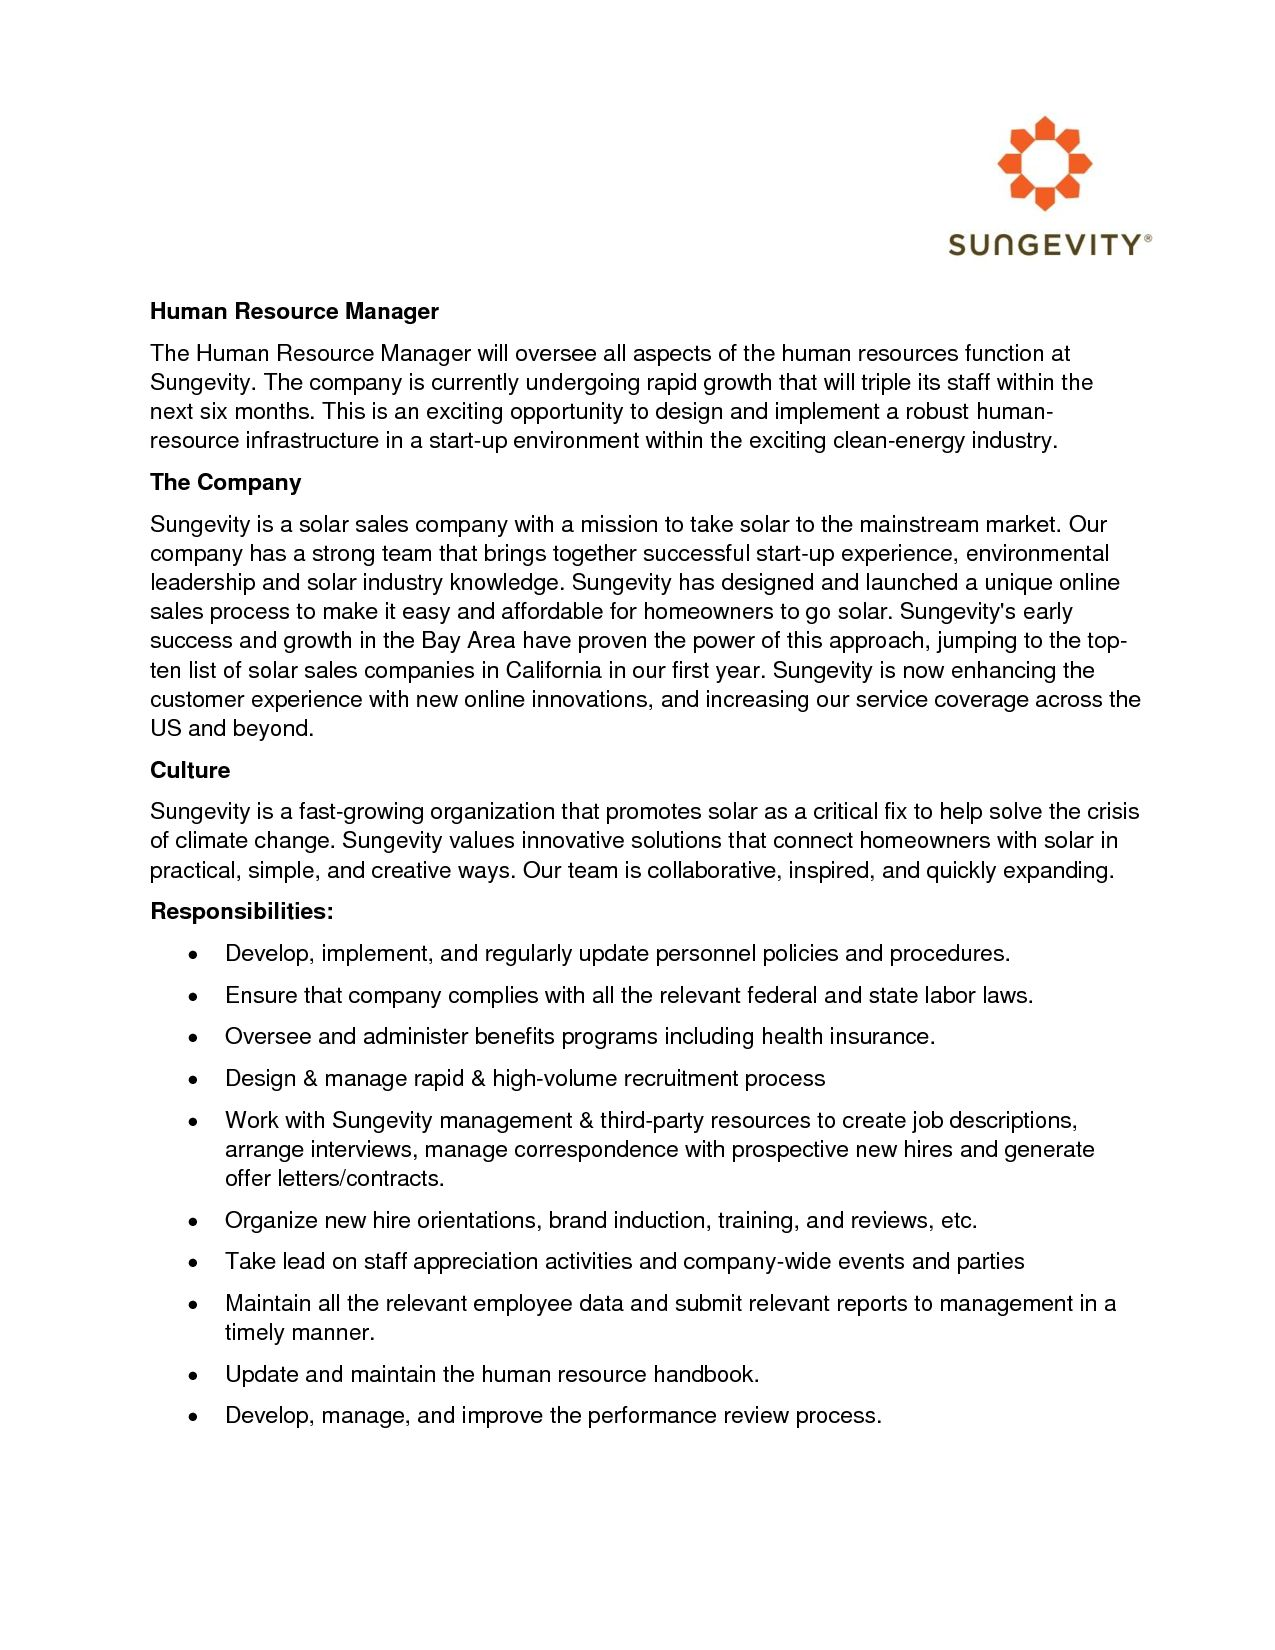 23 Human Resources Cover Letter Help Writing Resource Management Application Sample